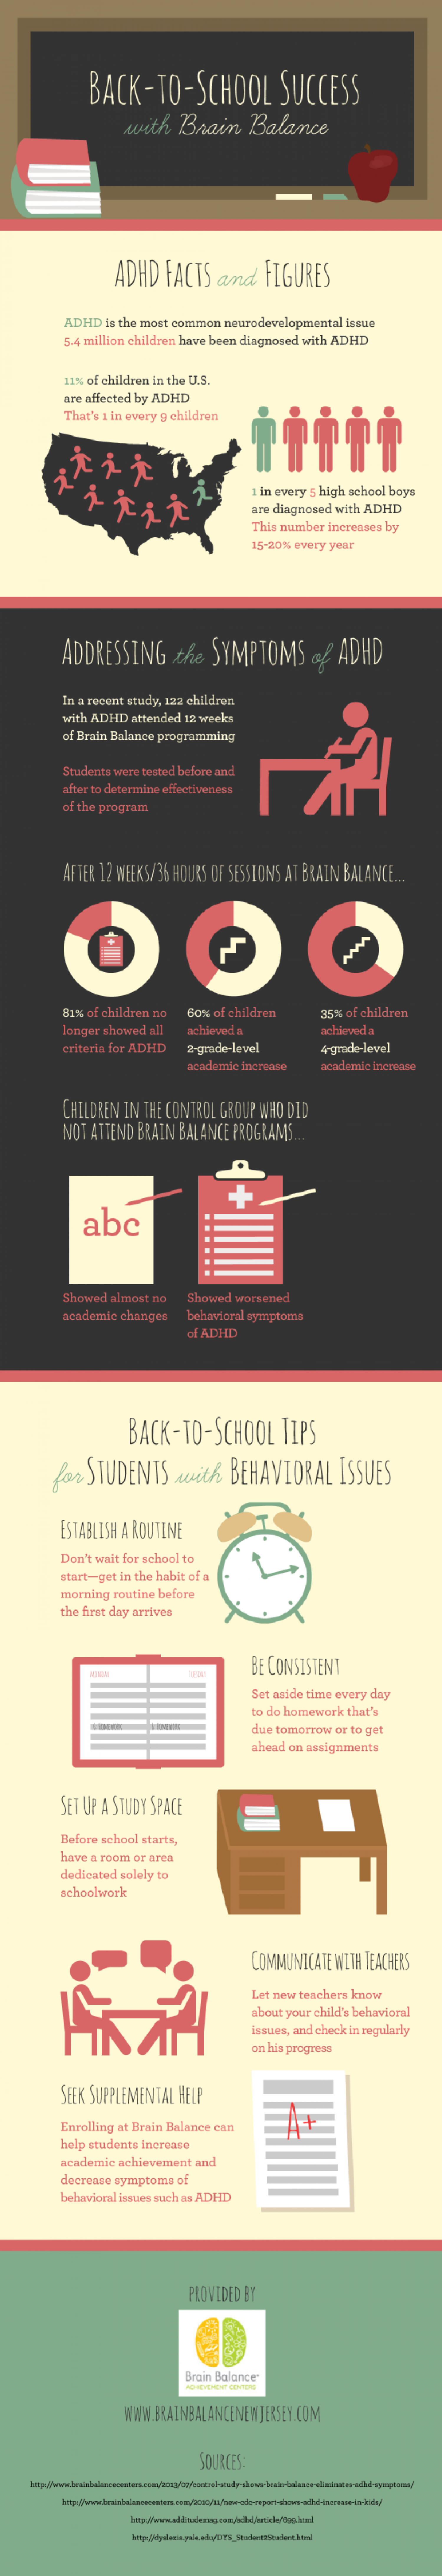 Back to School Success with Brain Balance Infographic